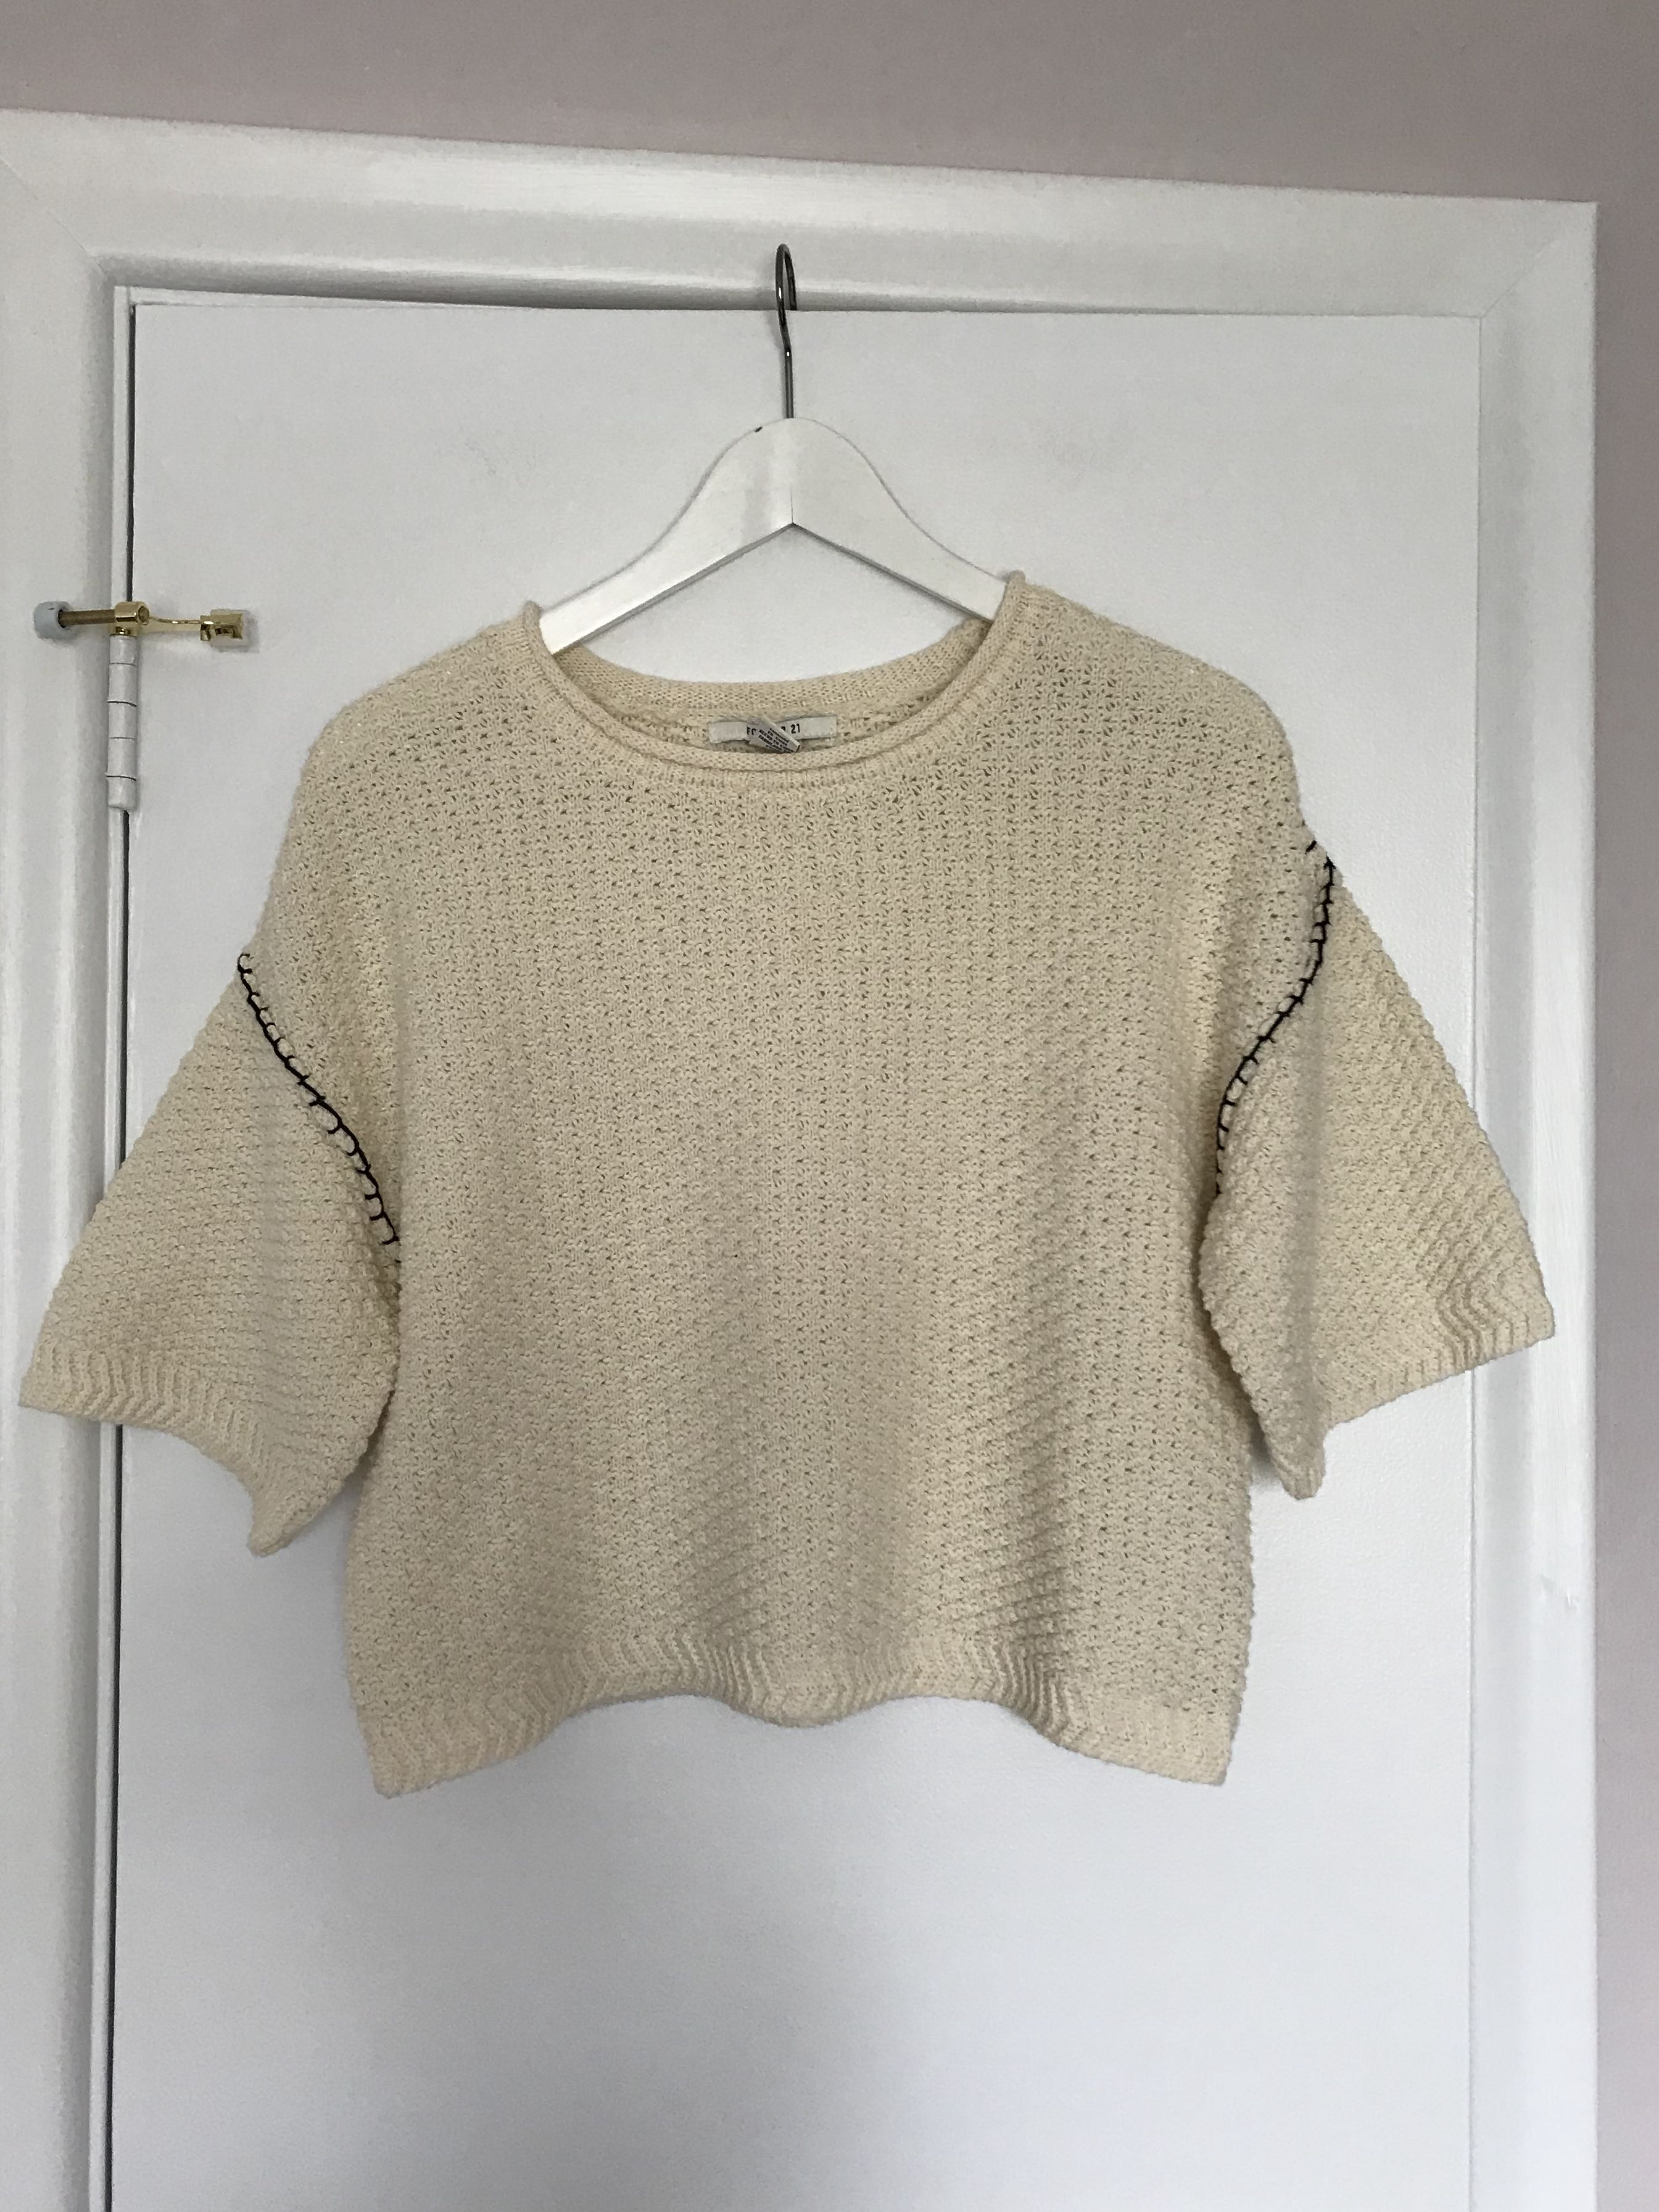 Forever 21 knit top